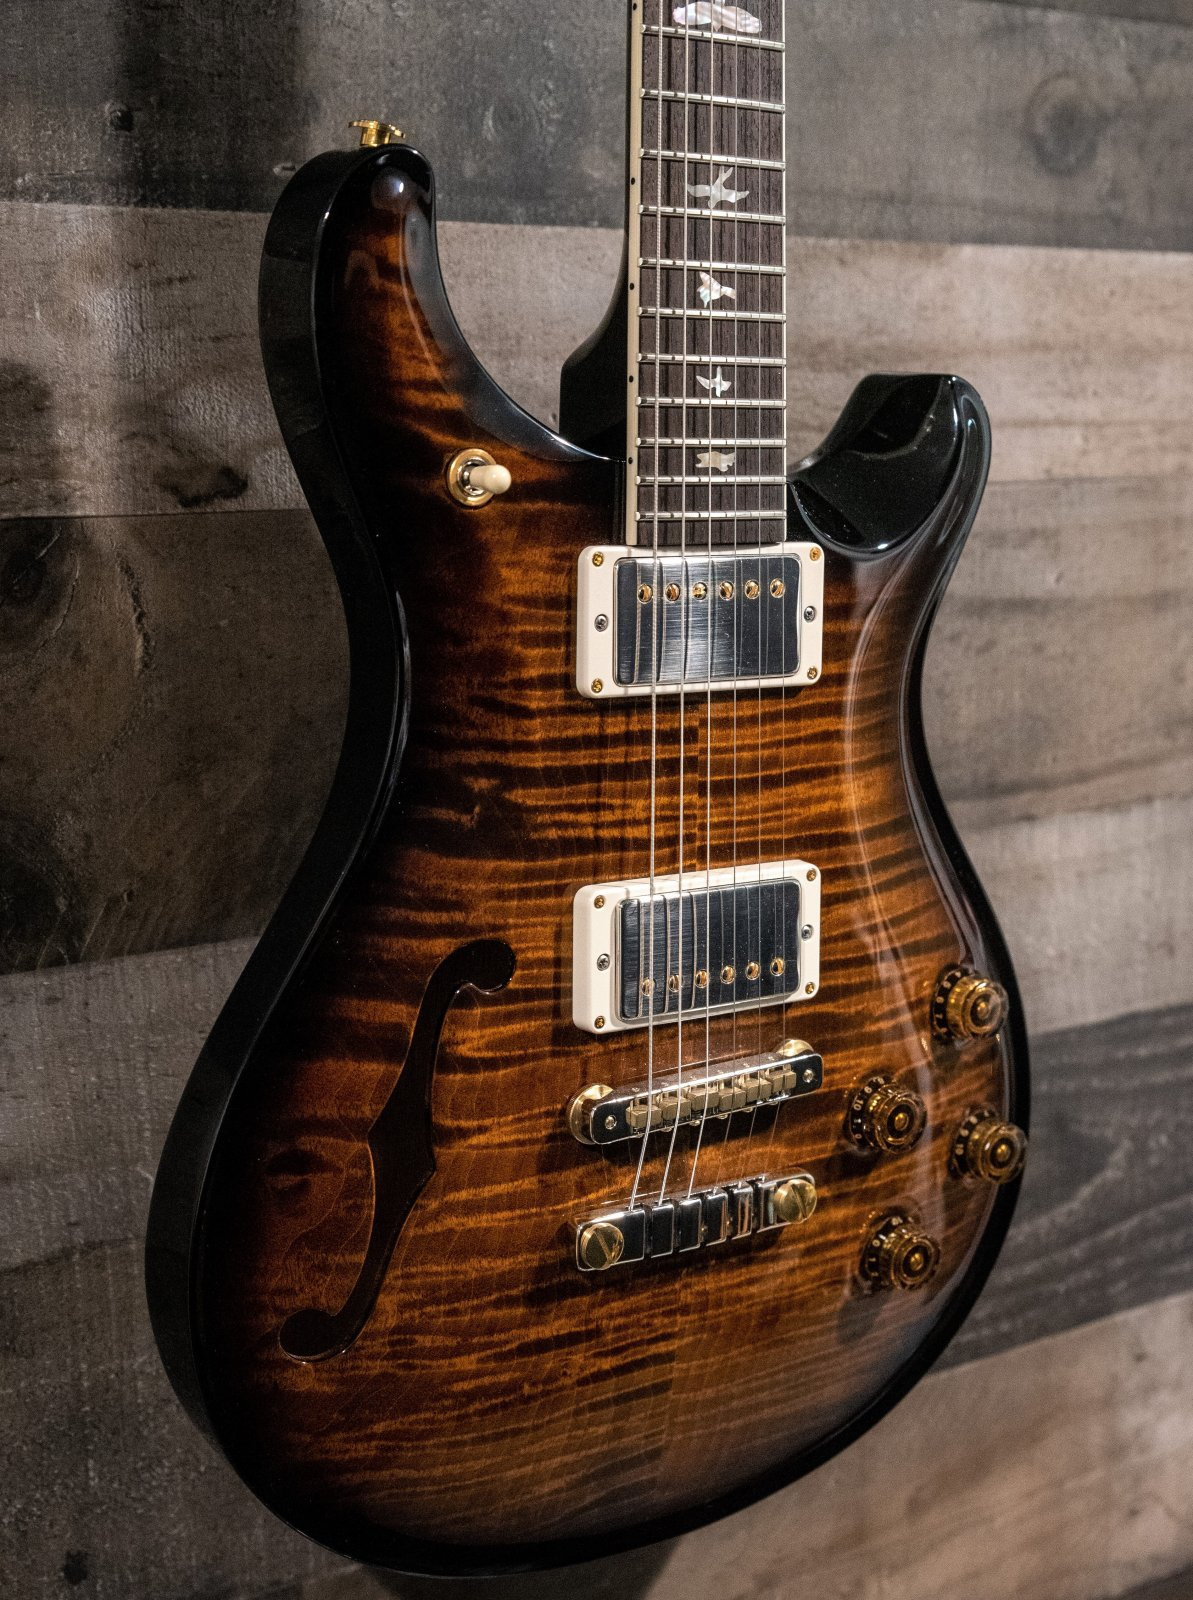 PRS McCarty 594 Semi-Hollow Limited 10 Top Black Gold Burst